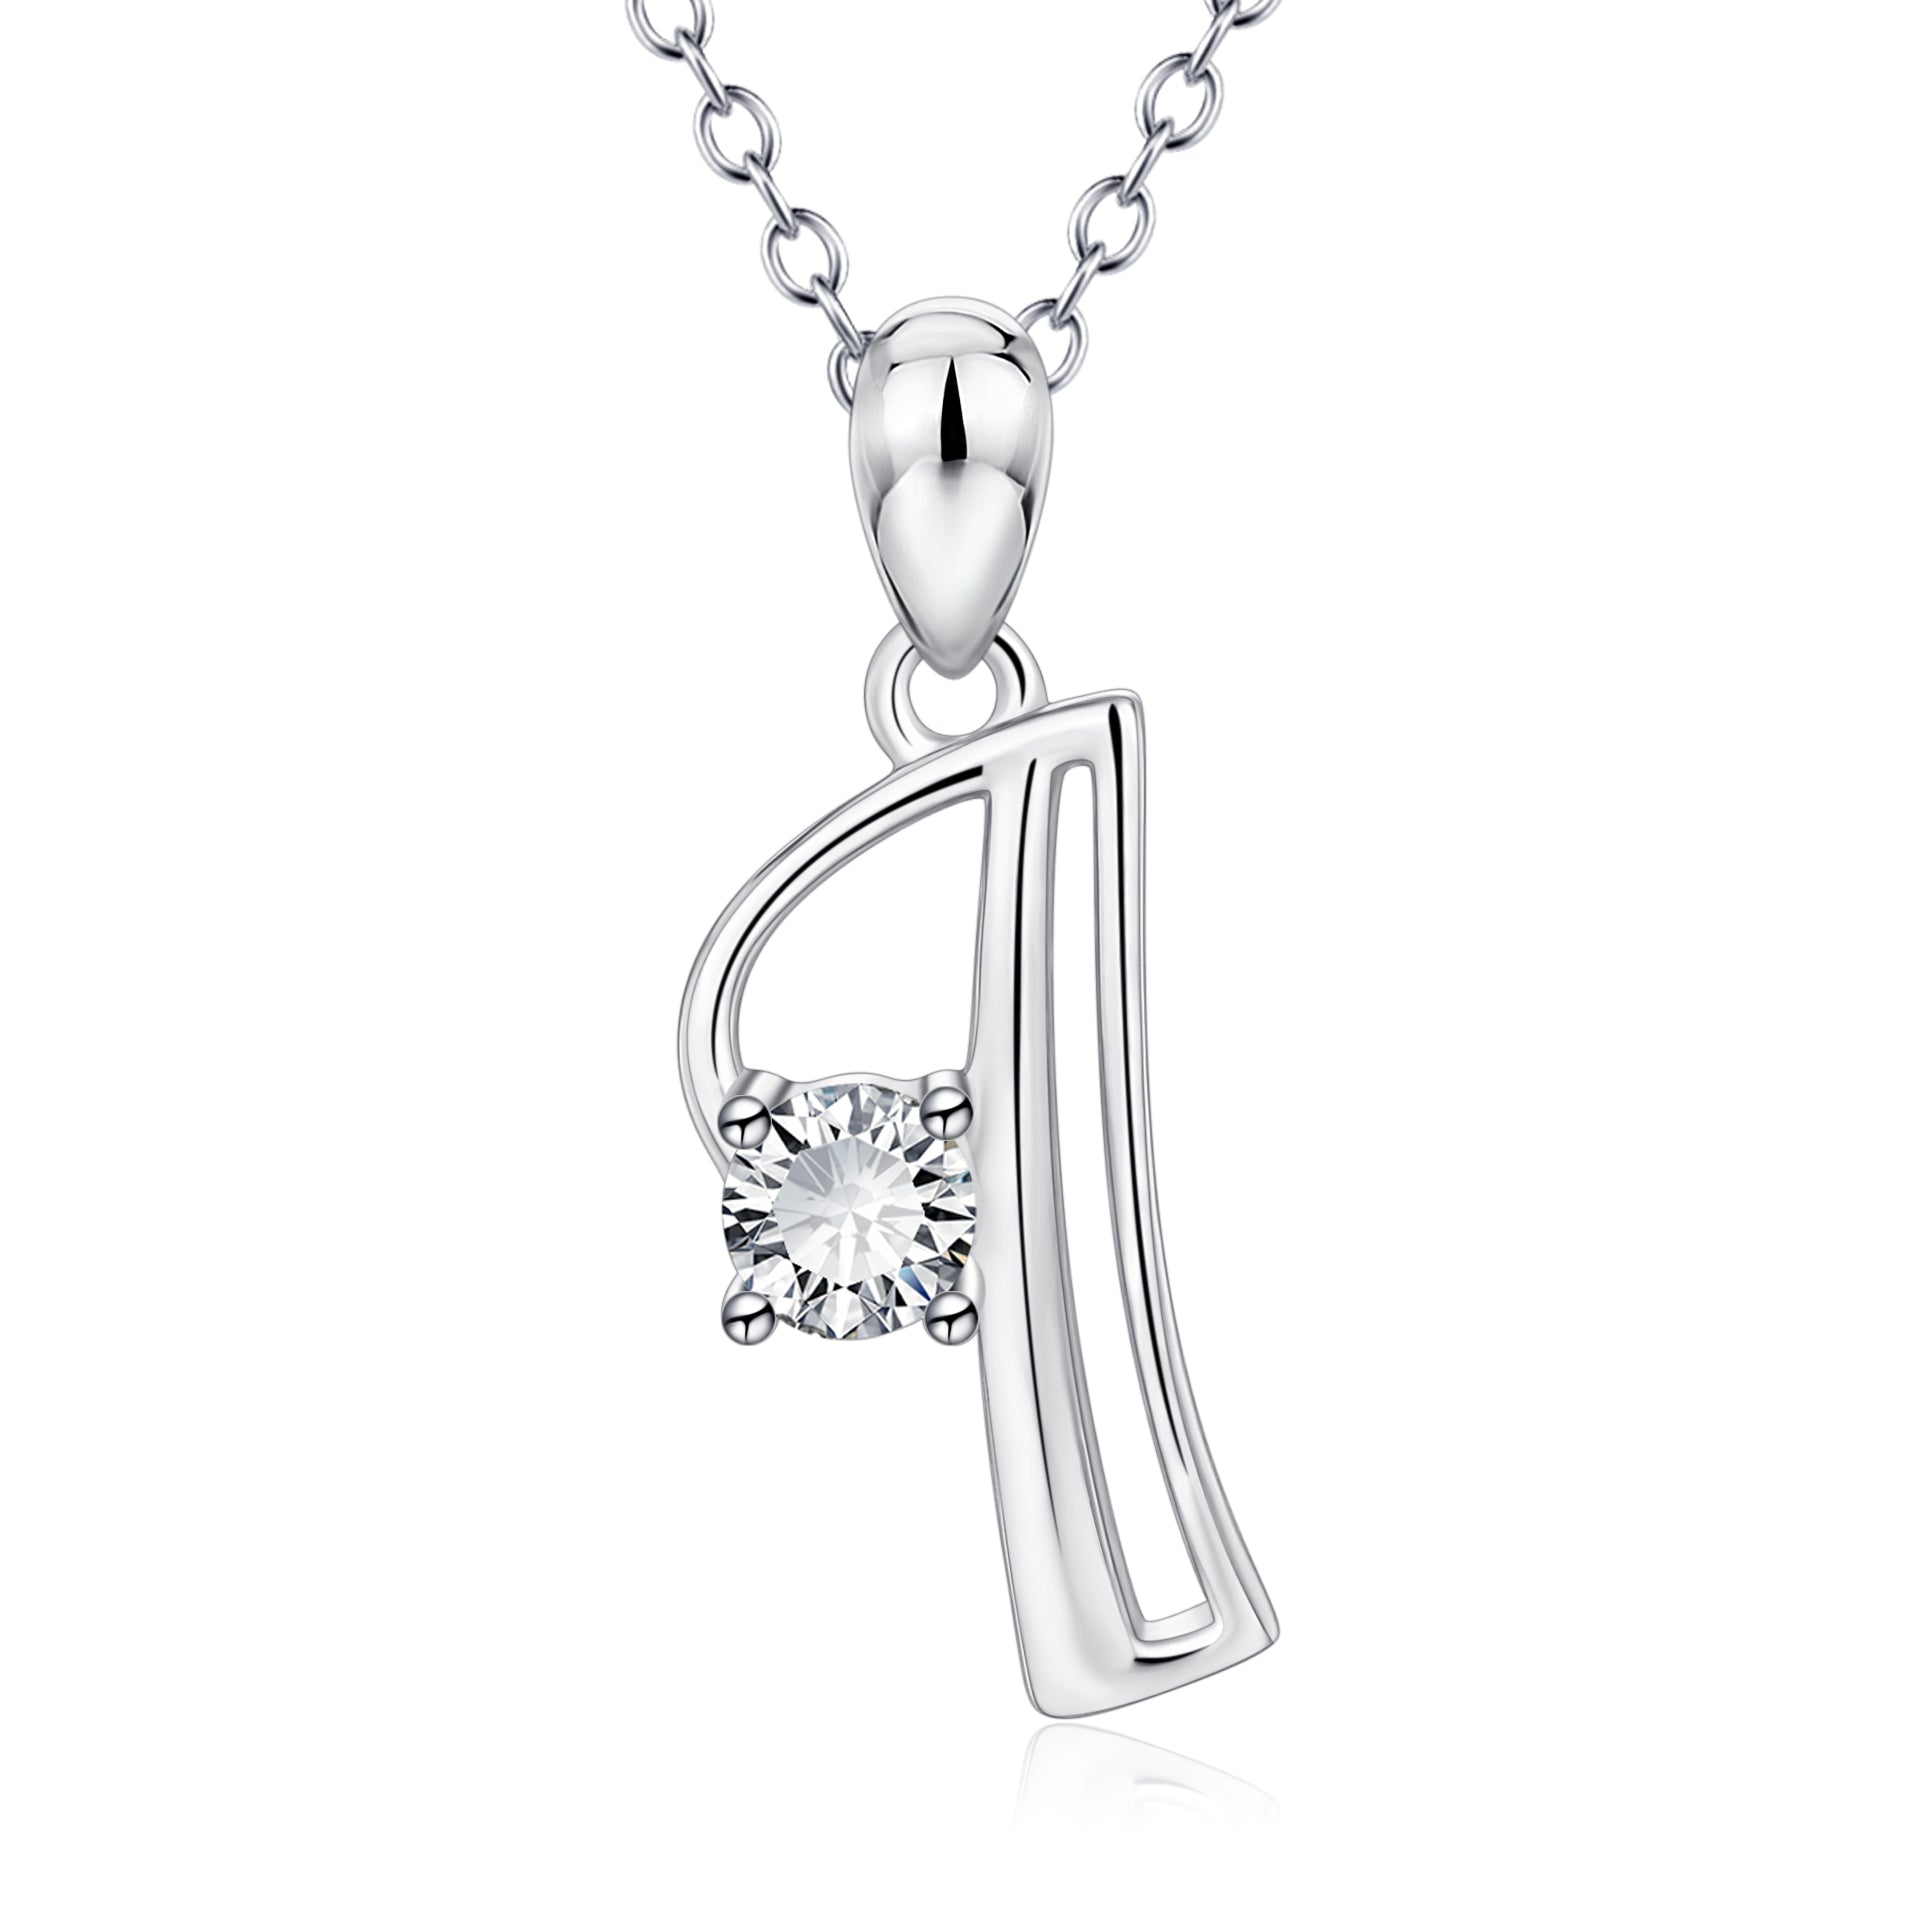 Wedding alphabet Pendant necklace 925 sterling silver jewelry